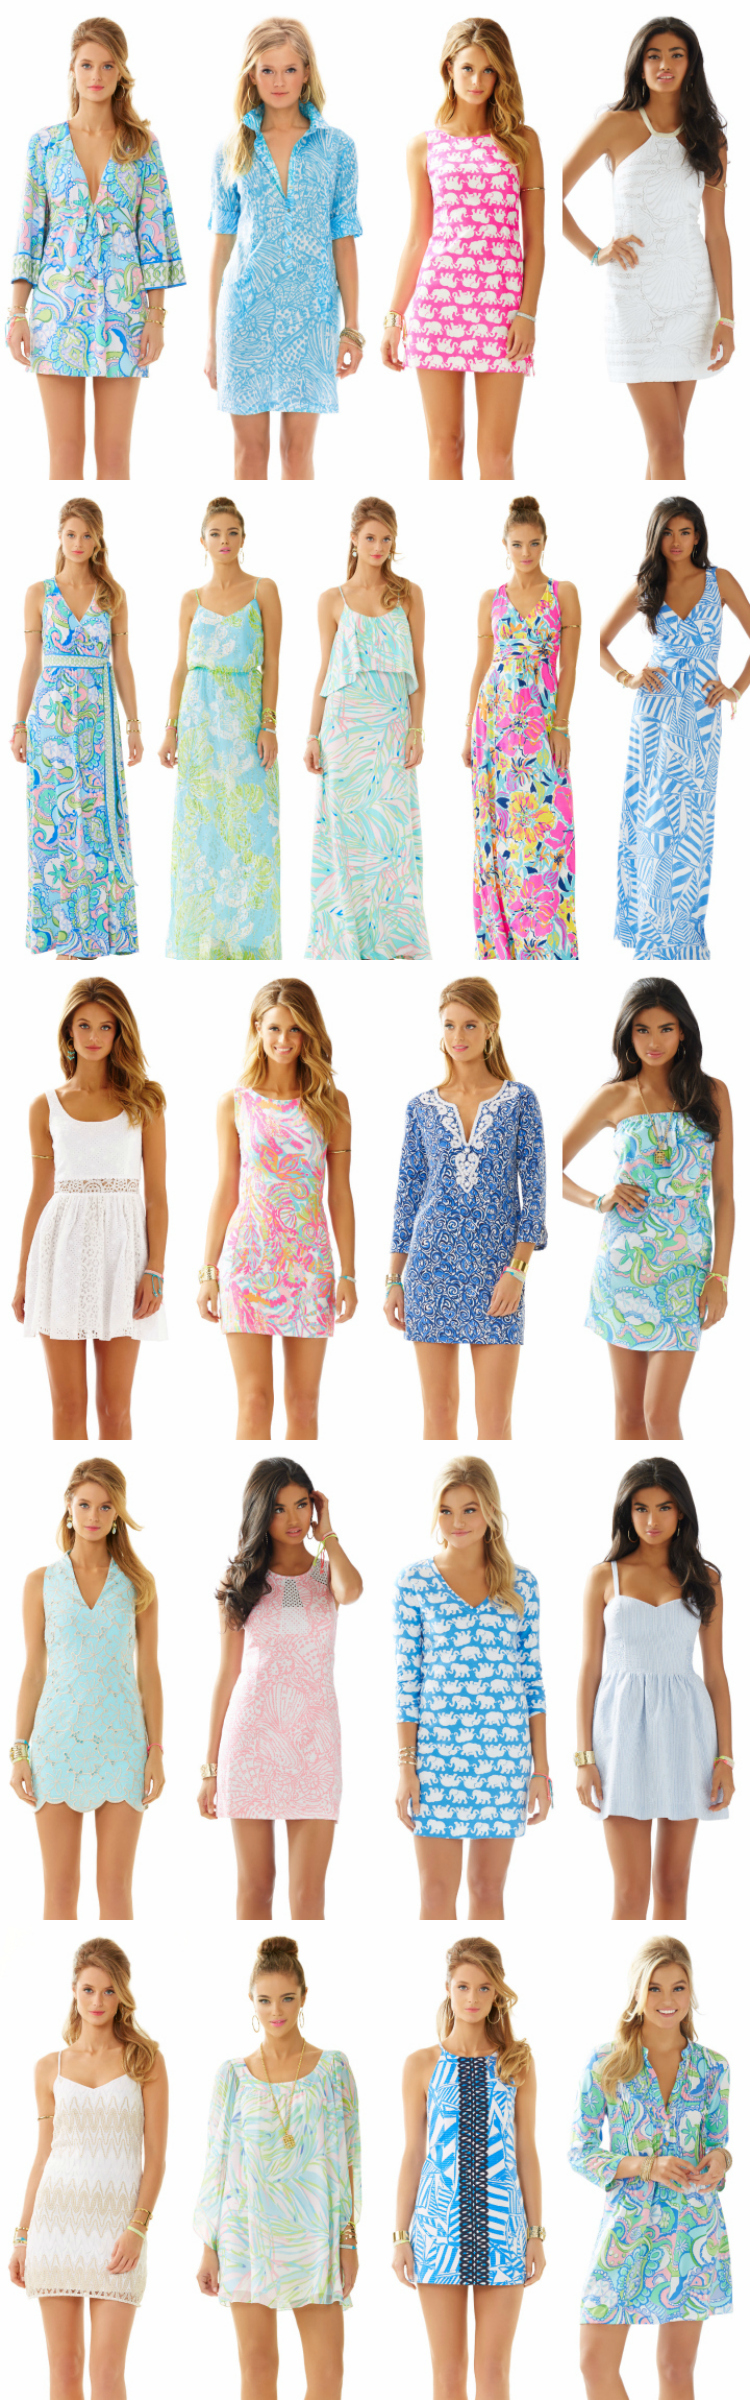 67cbe0d0c88043 Lilly Pulitzer, just go ahead and take all of my money! The new summer  collection is absolute perfection!